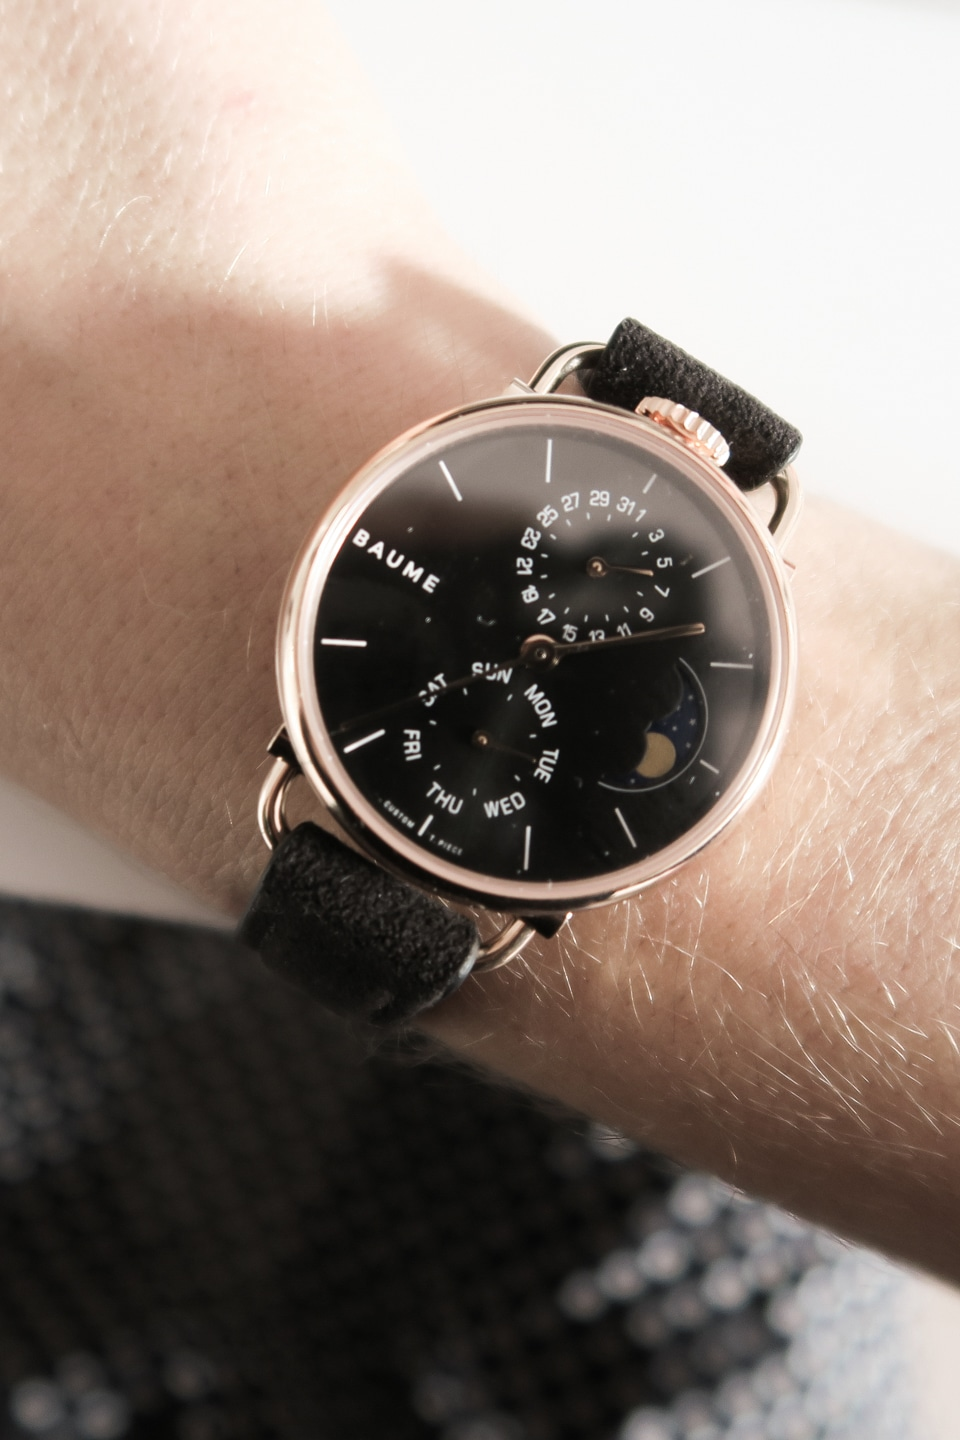 Close-up of BAUME watch face